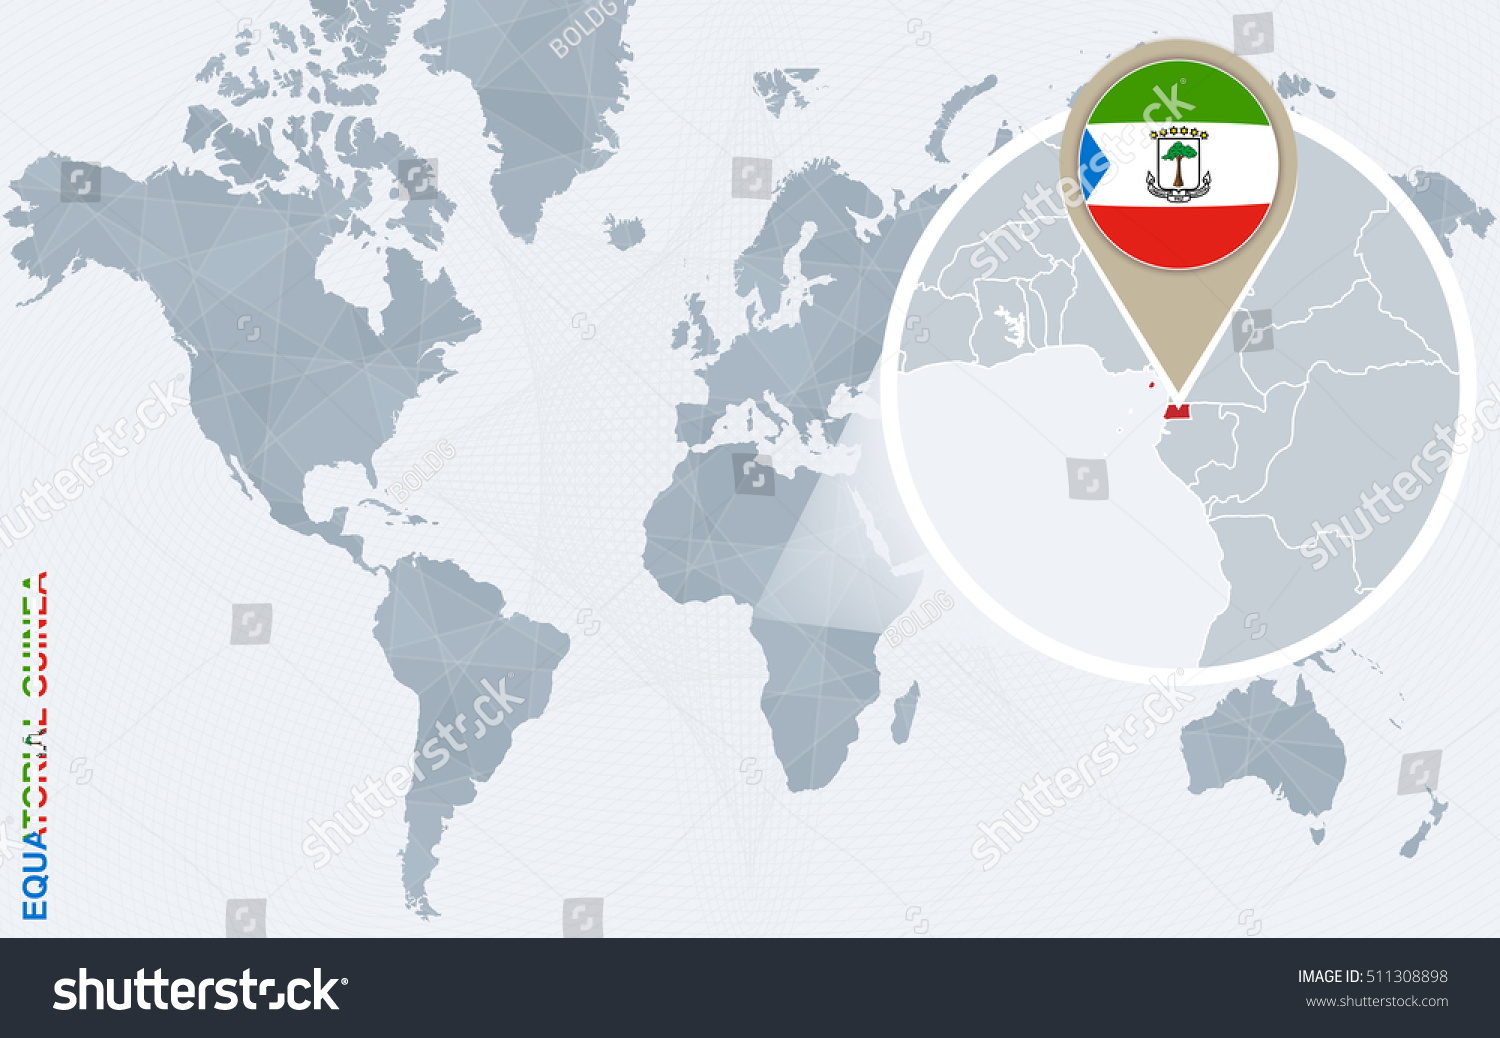 Abstract blue world map magnified equatorial stock illustration abstract blue world map with magnified equatorial guinea equatorial guinea flag and map raster gumiabroncs Images